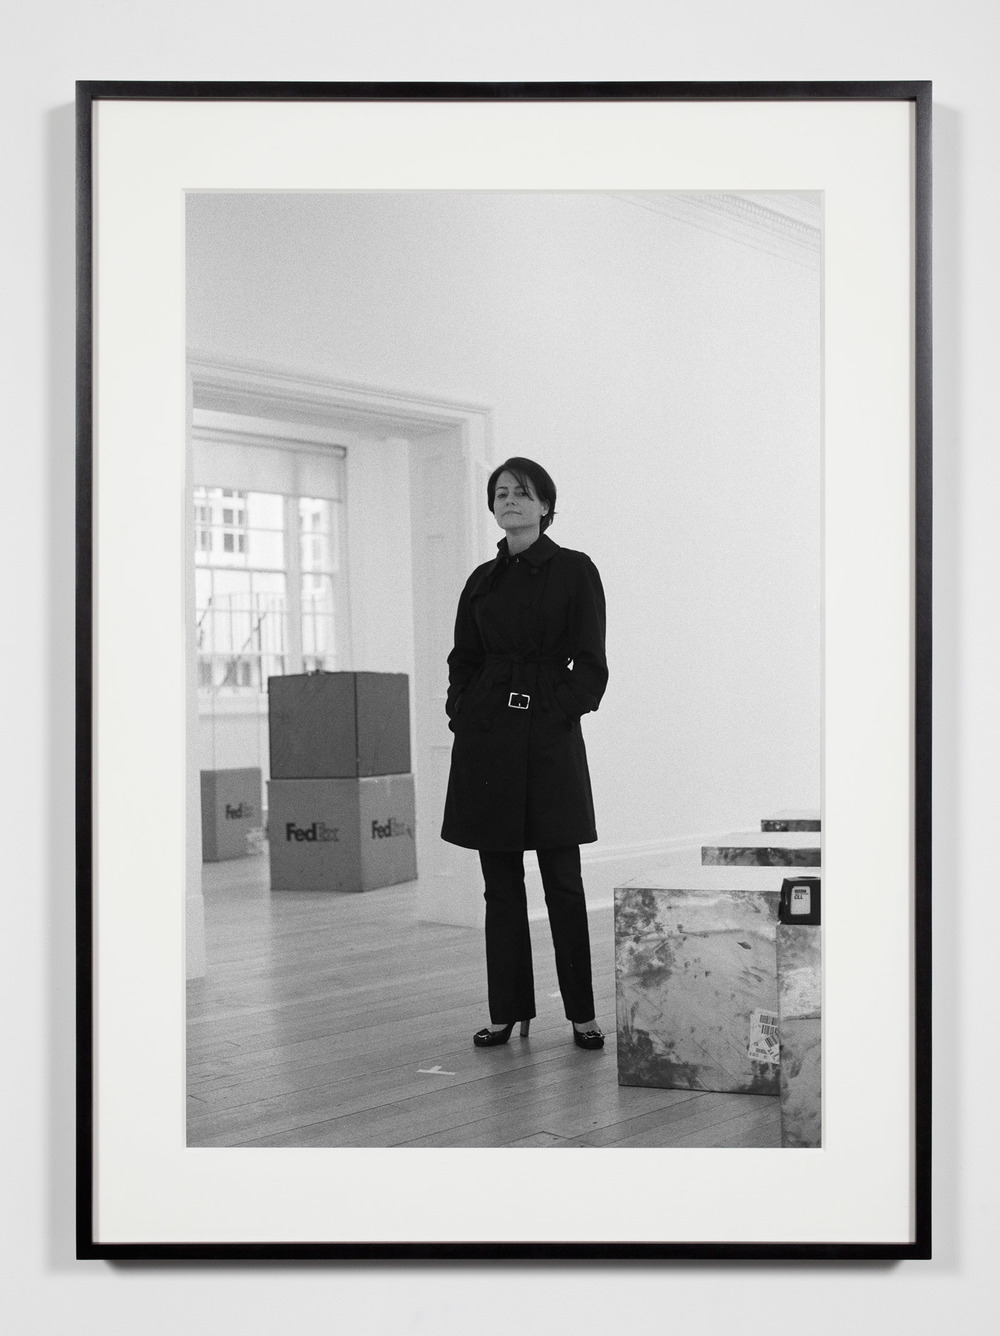 Gallery Director/Partner, London, United Kingdom, October 12, 2009    2011   Epson Ultrachrome K3 archival ink jet print on Hahnemühle Photo Rag paper  36 3/8 x 26 3/8 inches   Industrial Portraits, 2008–